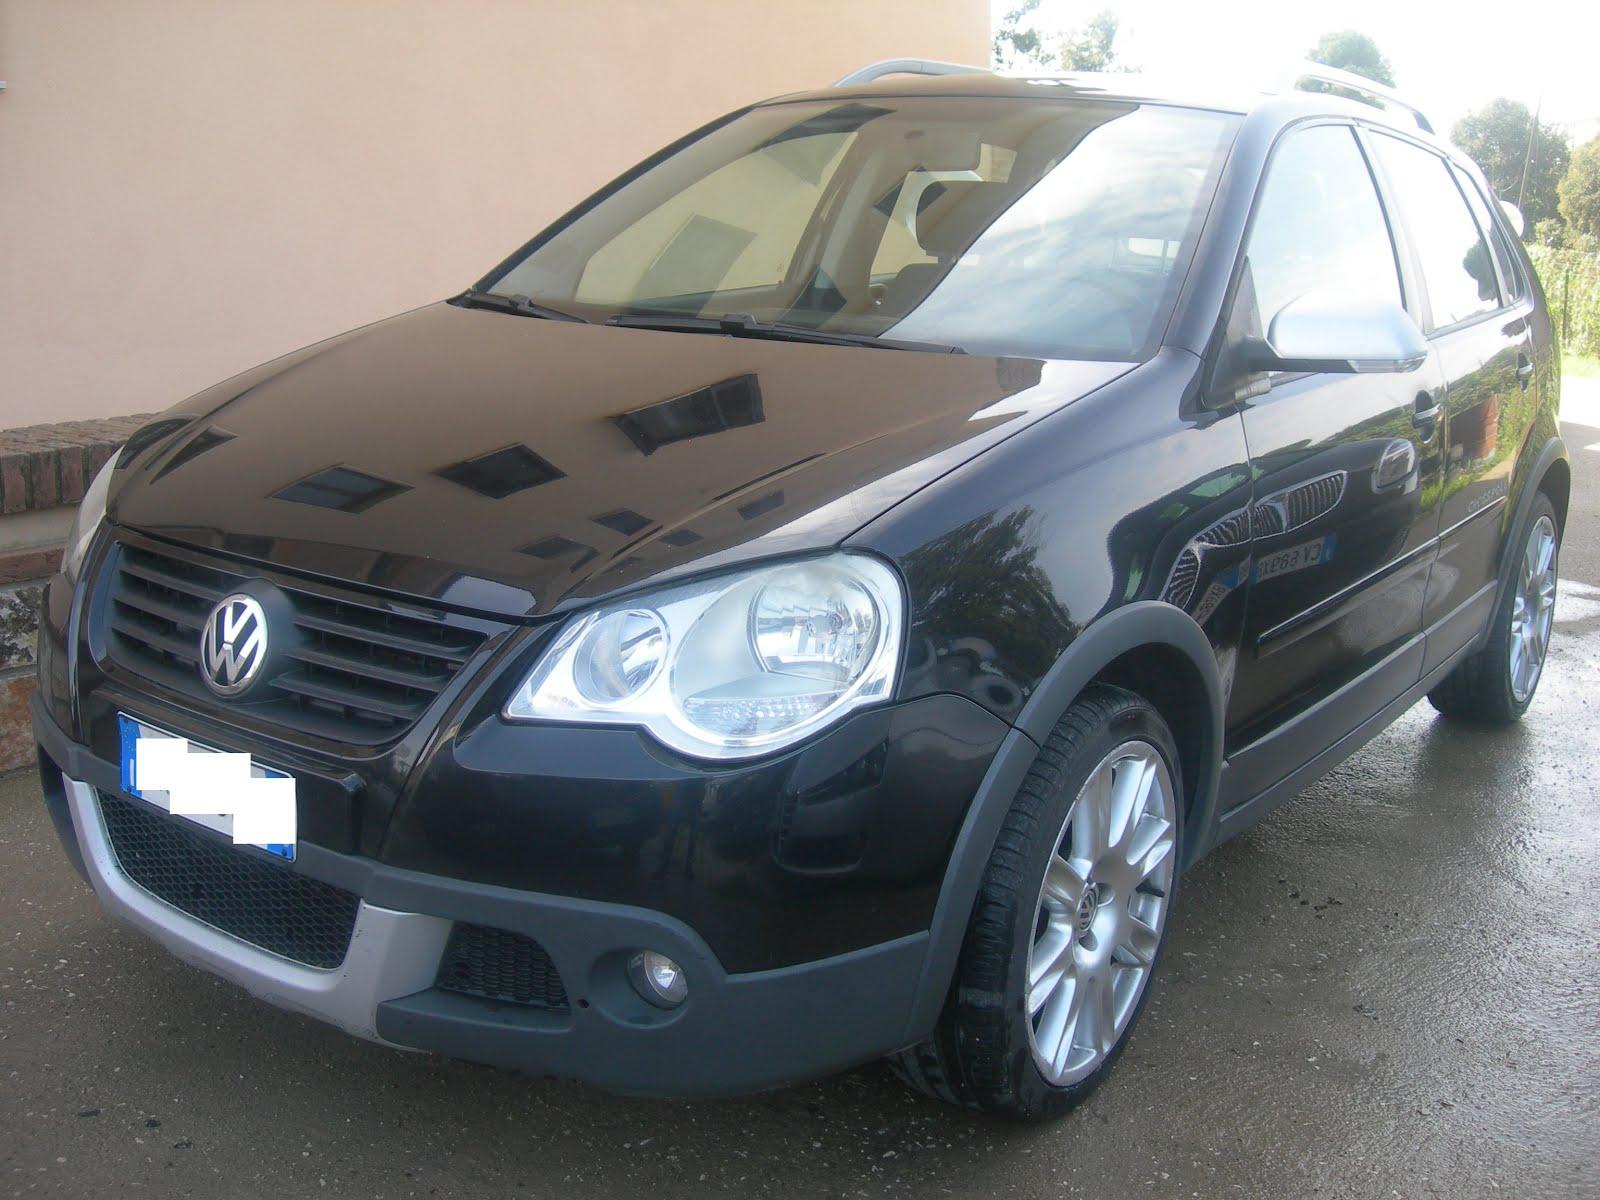 Vw Polo Cross 1.4 TDI 69 CV anno 2007 130.000 km accessori full optional prezzo 5.800,00 euro